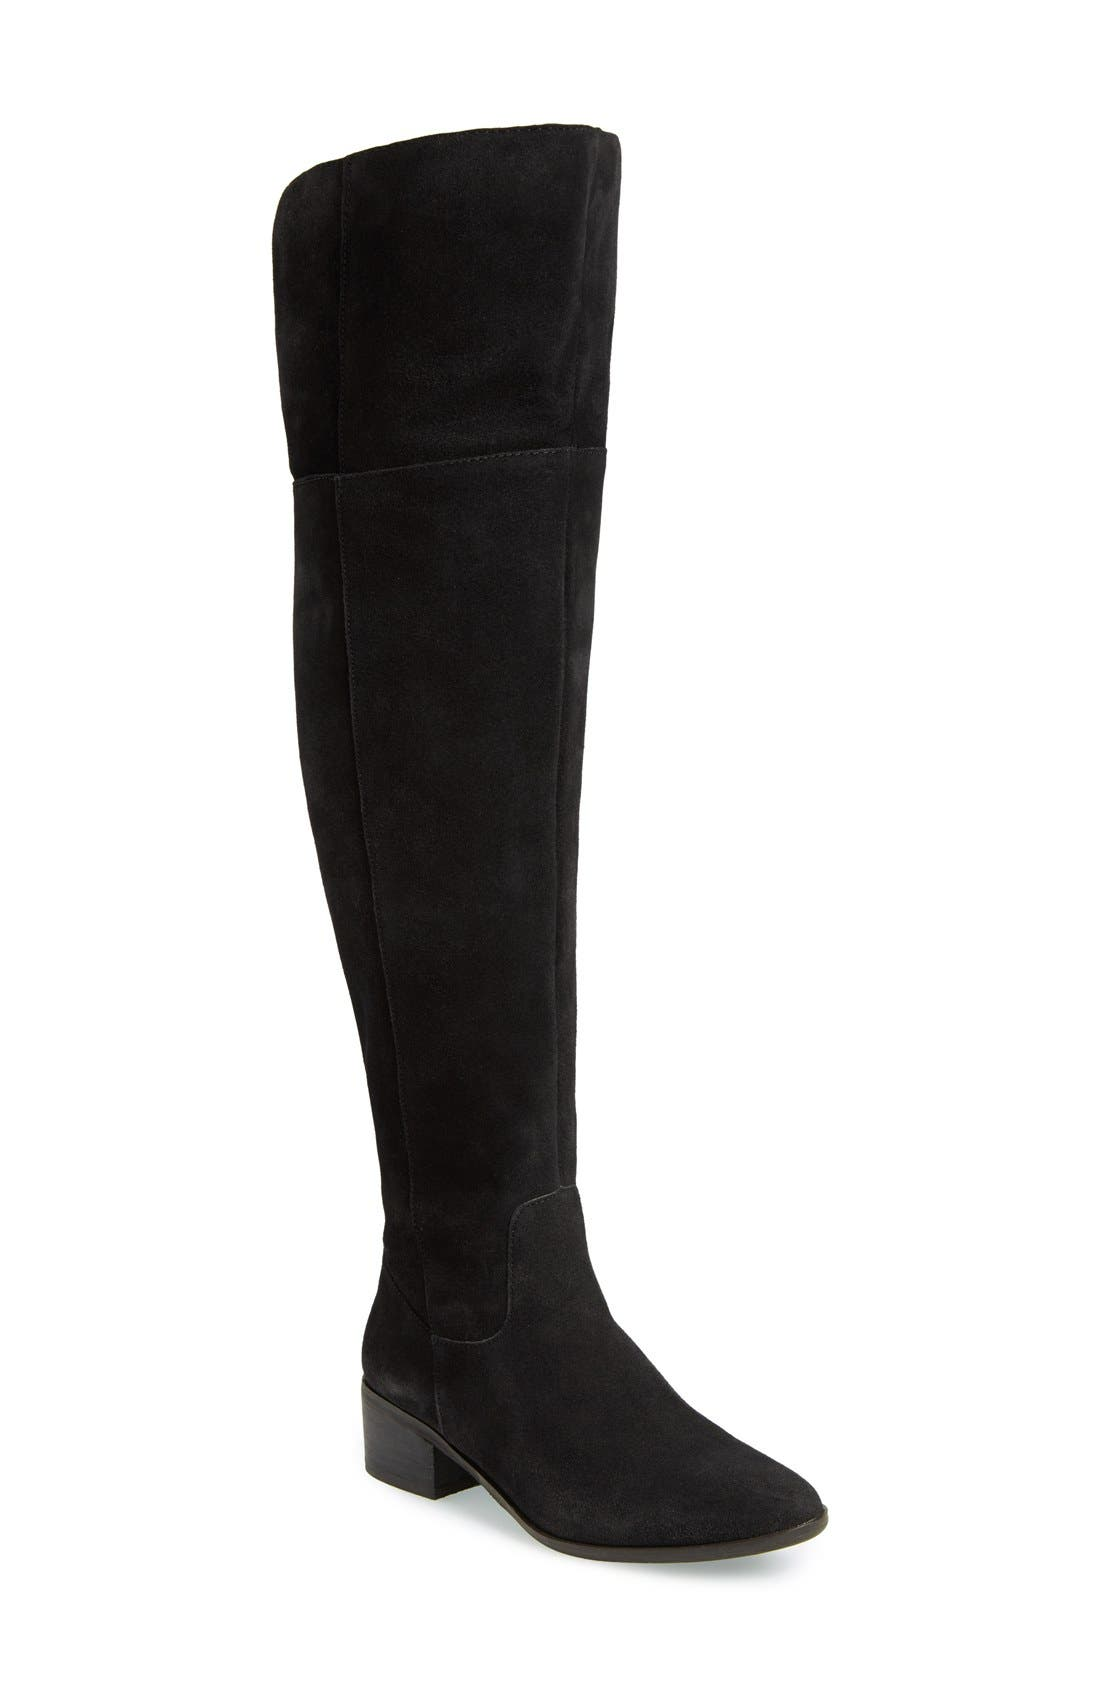 Alternate Image 1 Selected - Steve Madden Suede Over the Knee Boot (Women)